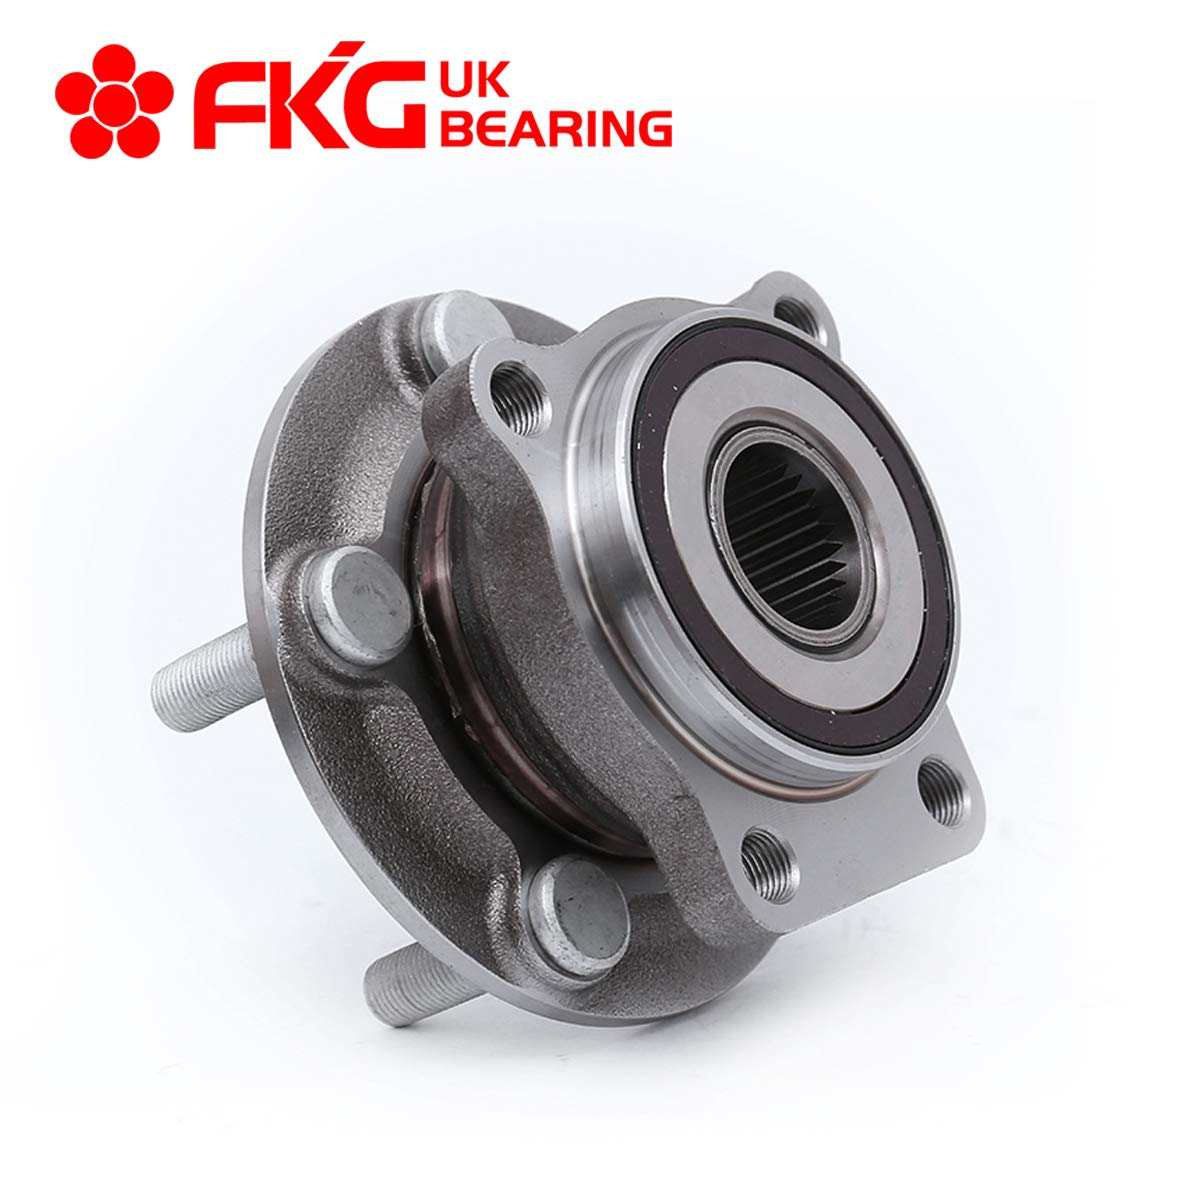 FKG 513220 Front Wheel Bearing Hub Assembly For 2005-2014 Subaru Outback, 2005-2014 Subaru Legacy 5 Lugs by FKG